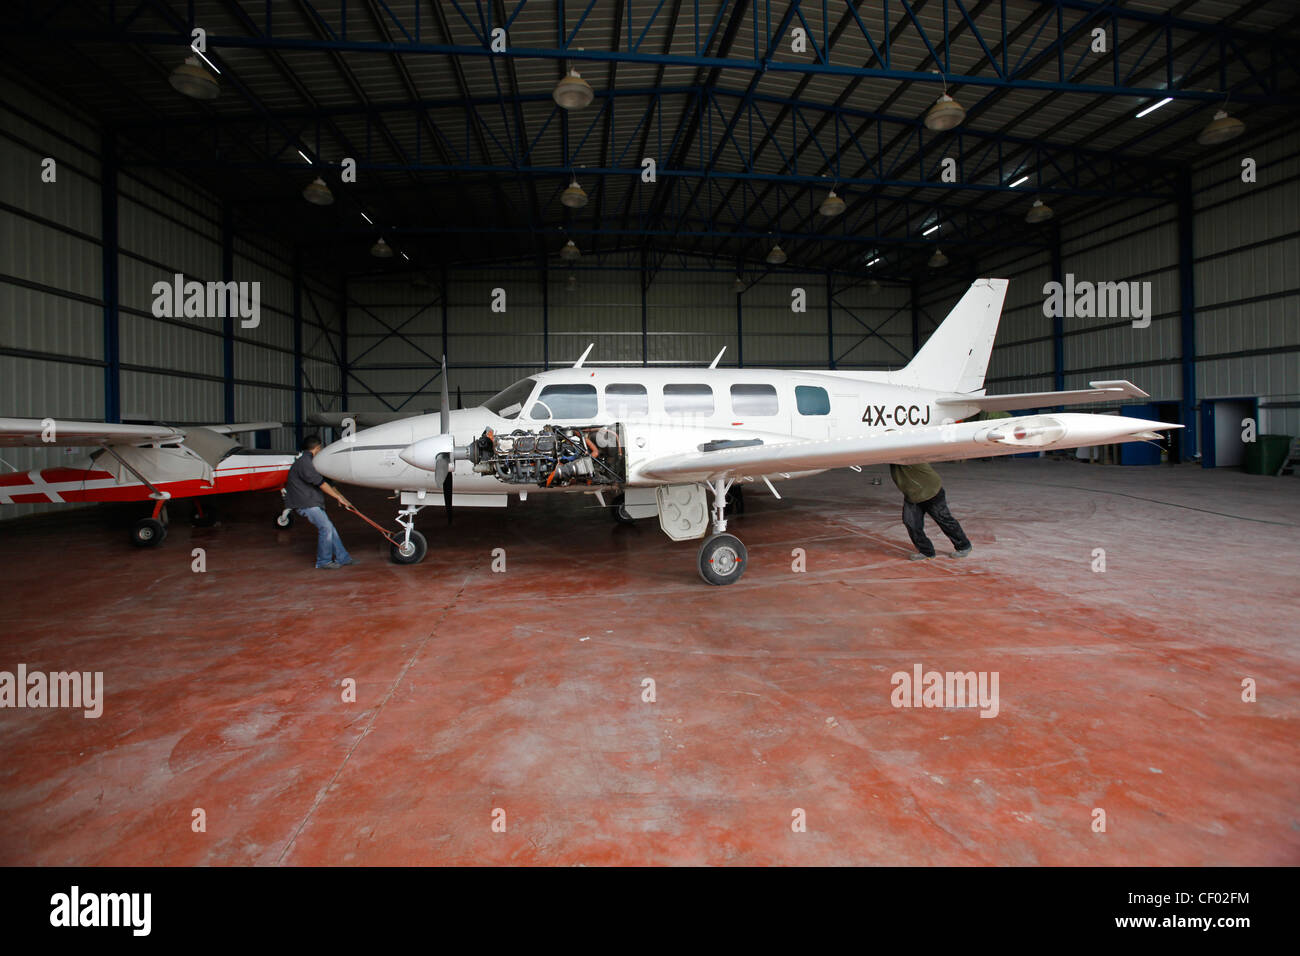 A Piper PA-31 twin-engined aircraft at the hangar of Sde Teiman airfield in Southern Israel - Stock Image